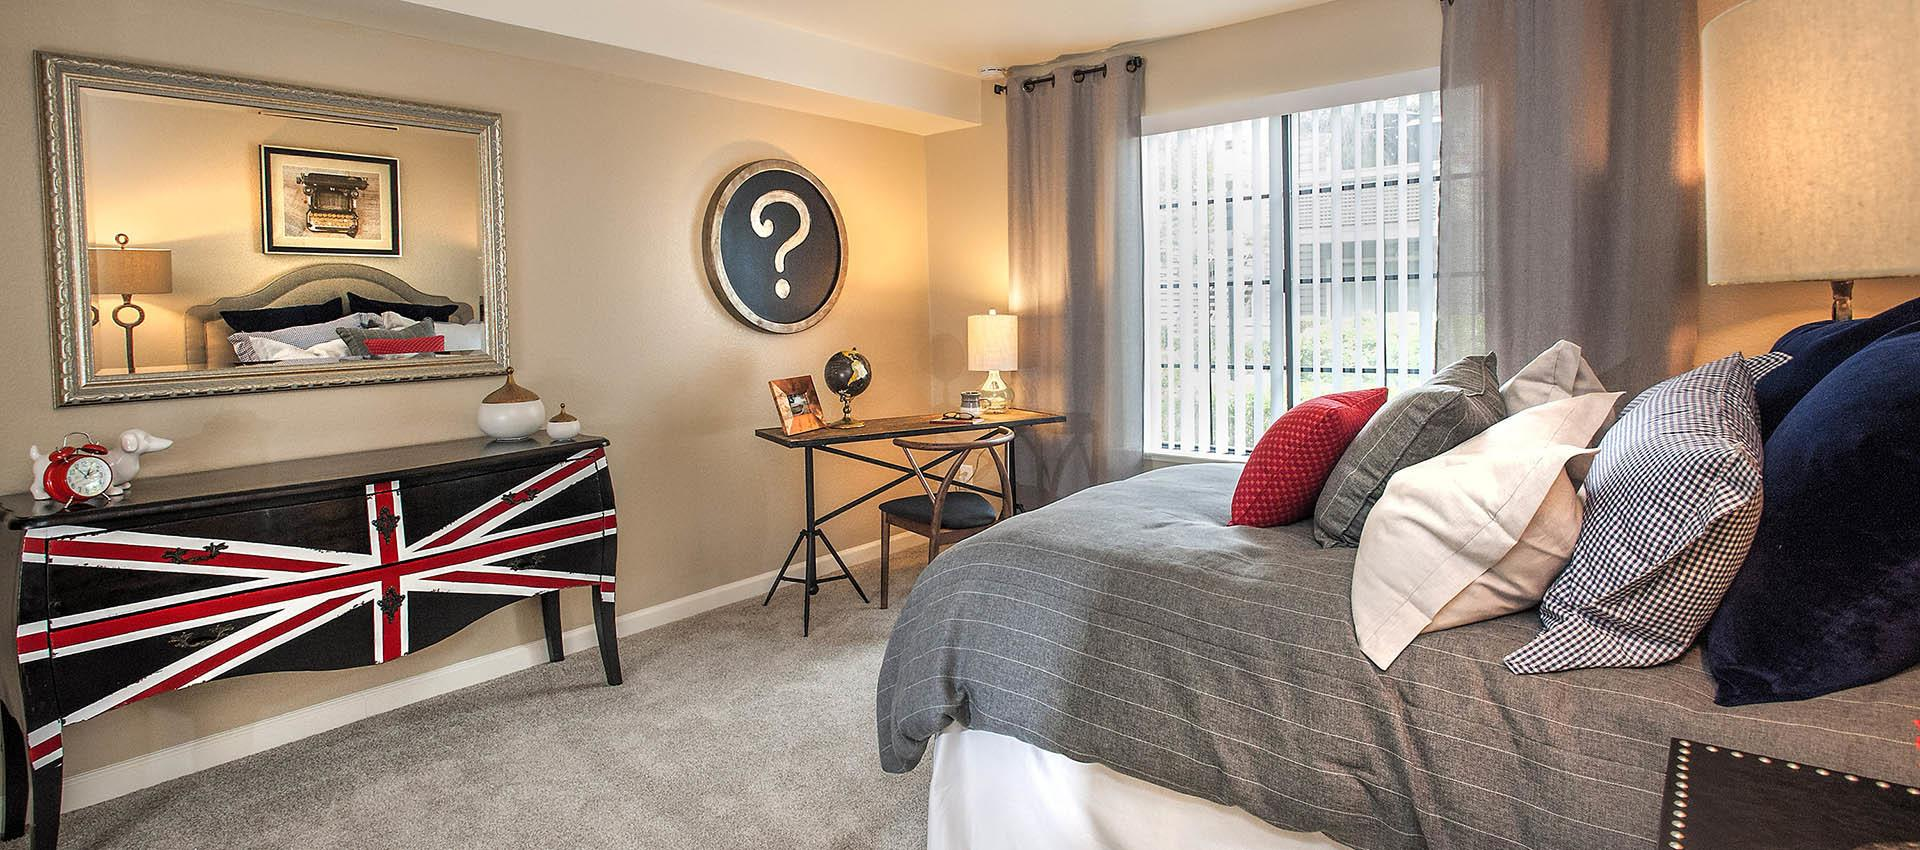 Spacious Master Bedroom With Modern Decorations at Hidden Lake Condominium Rentals in Sacramento, California